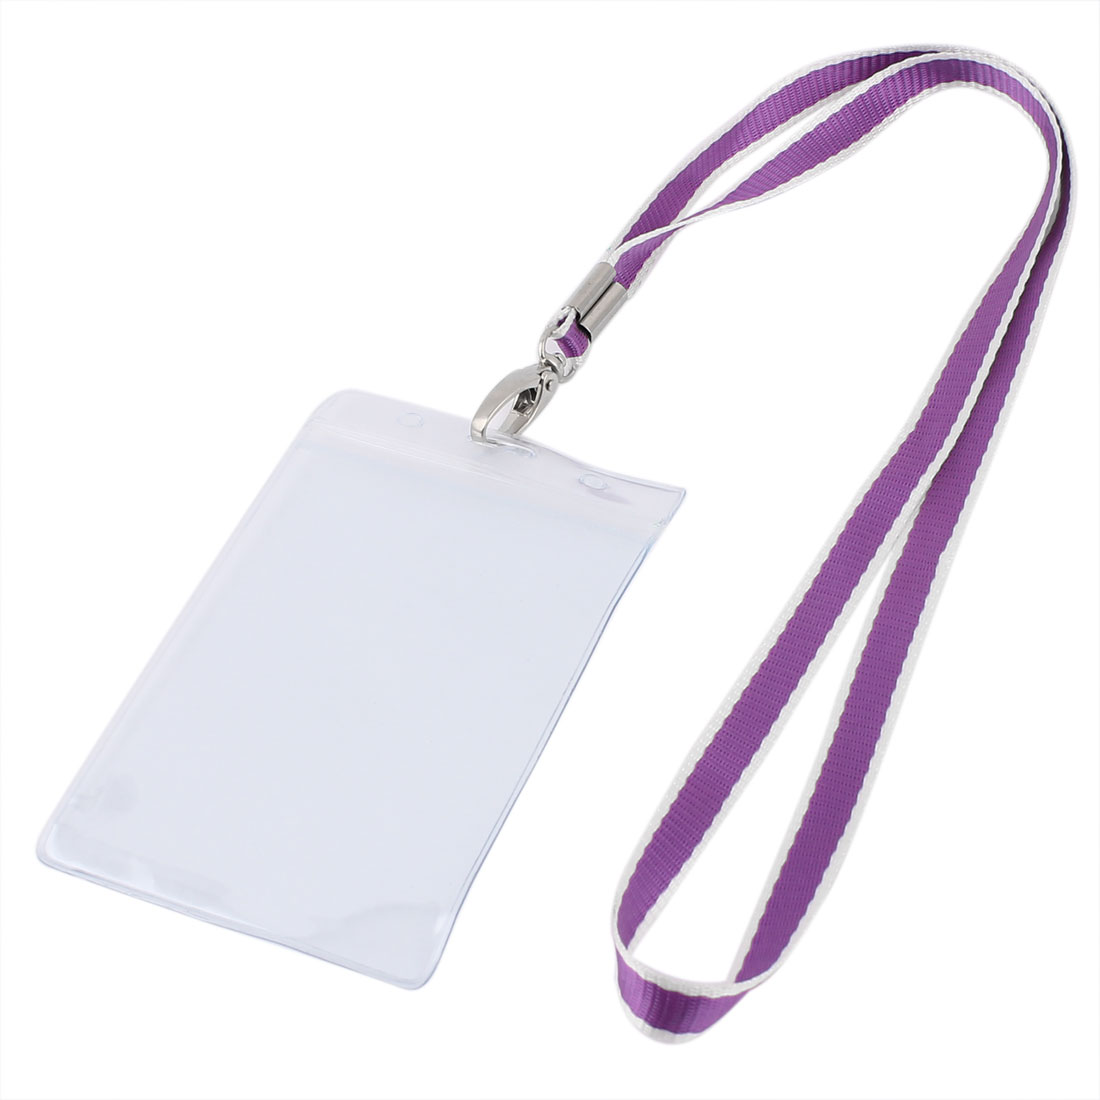 Plastic Vertical Design Purple Lanyard Exhibition Company Name Badge Card Holder